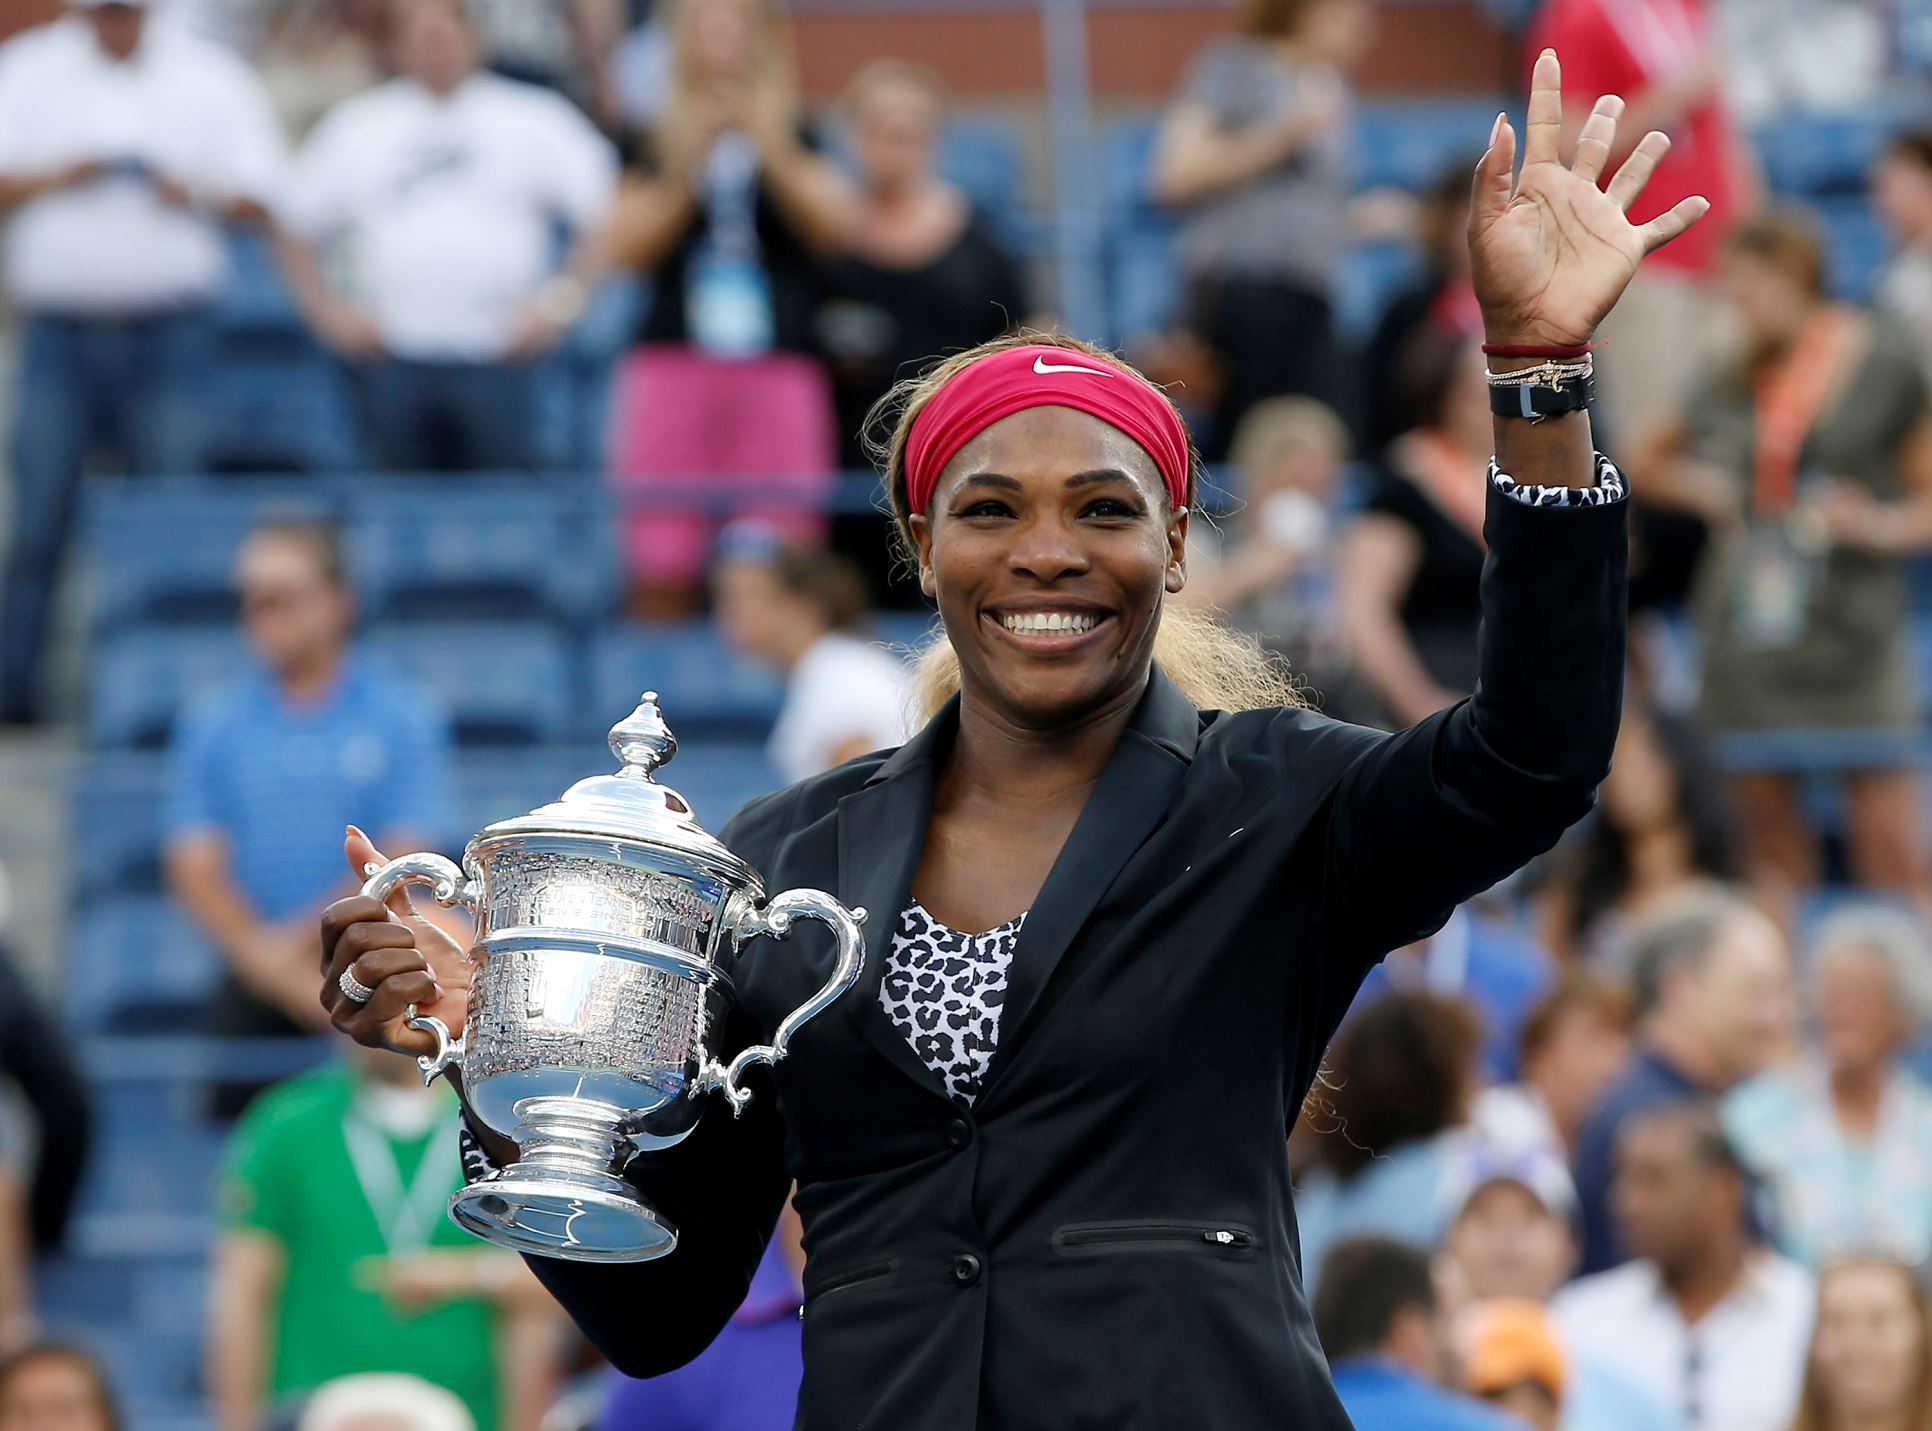 Serena Williams of the U.S. holds her trophy and waves to the crowd after defeating Caroline Wozniacki of Denmark in their women's singles finals match at the 2014 U.S. Open tennis tournament in New York City on Sunday.